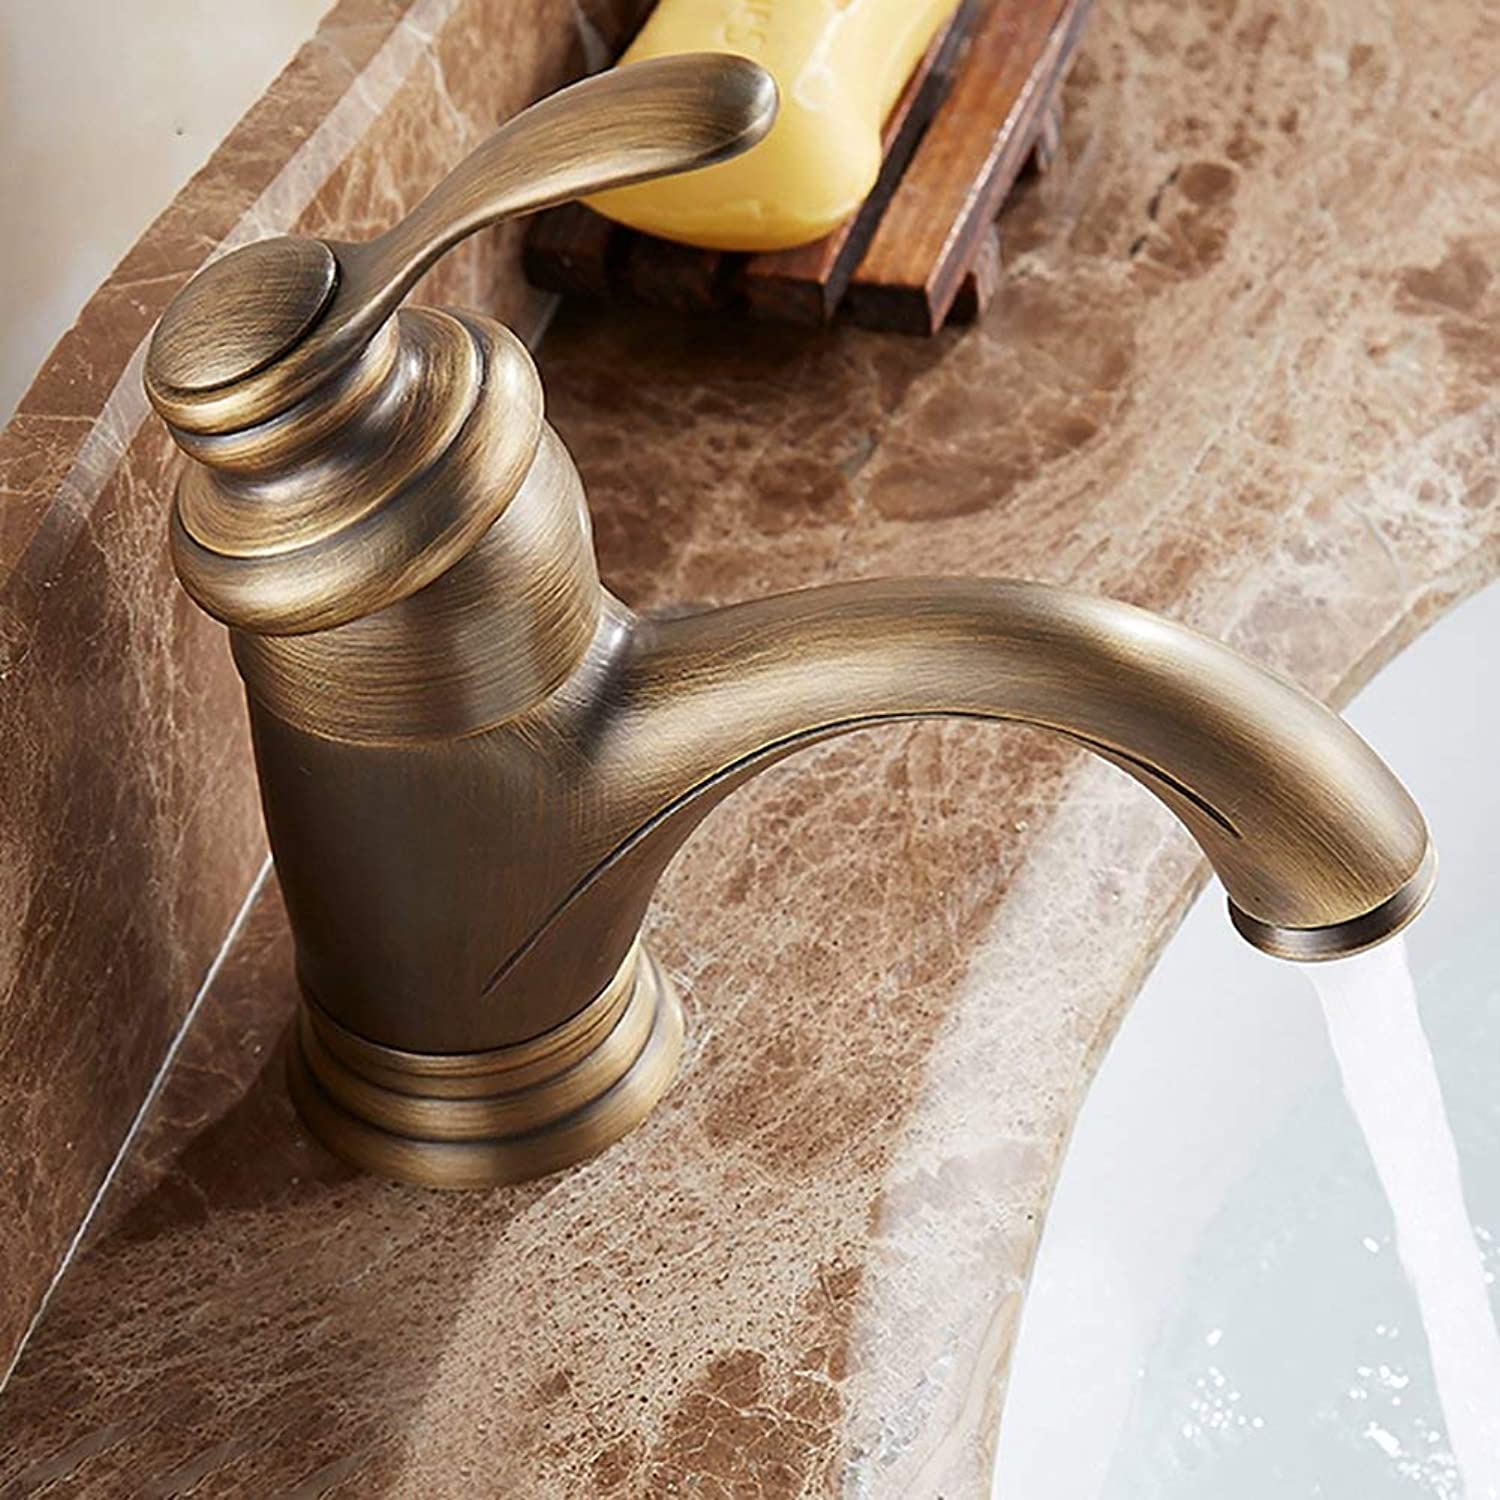 JZX Copper Basin Faucet, European Antique Single Hole Hot and Cold Water Faucet, Bathroom Cabinet gold Faucet,Short,